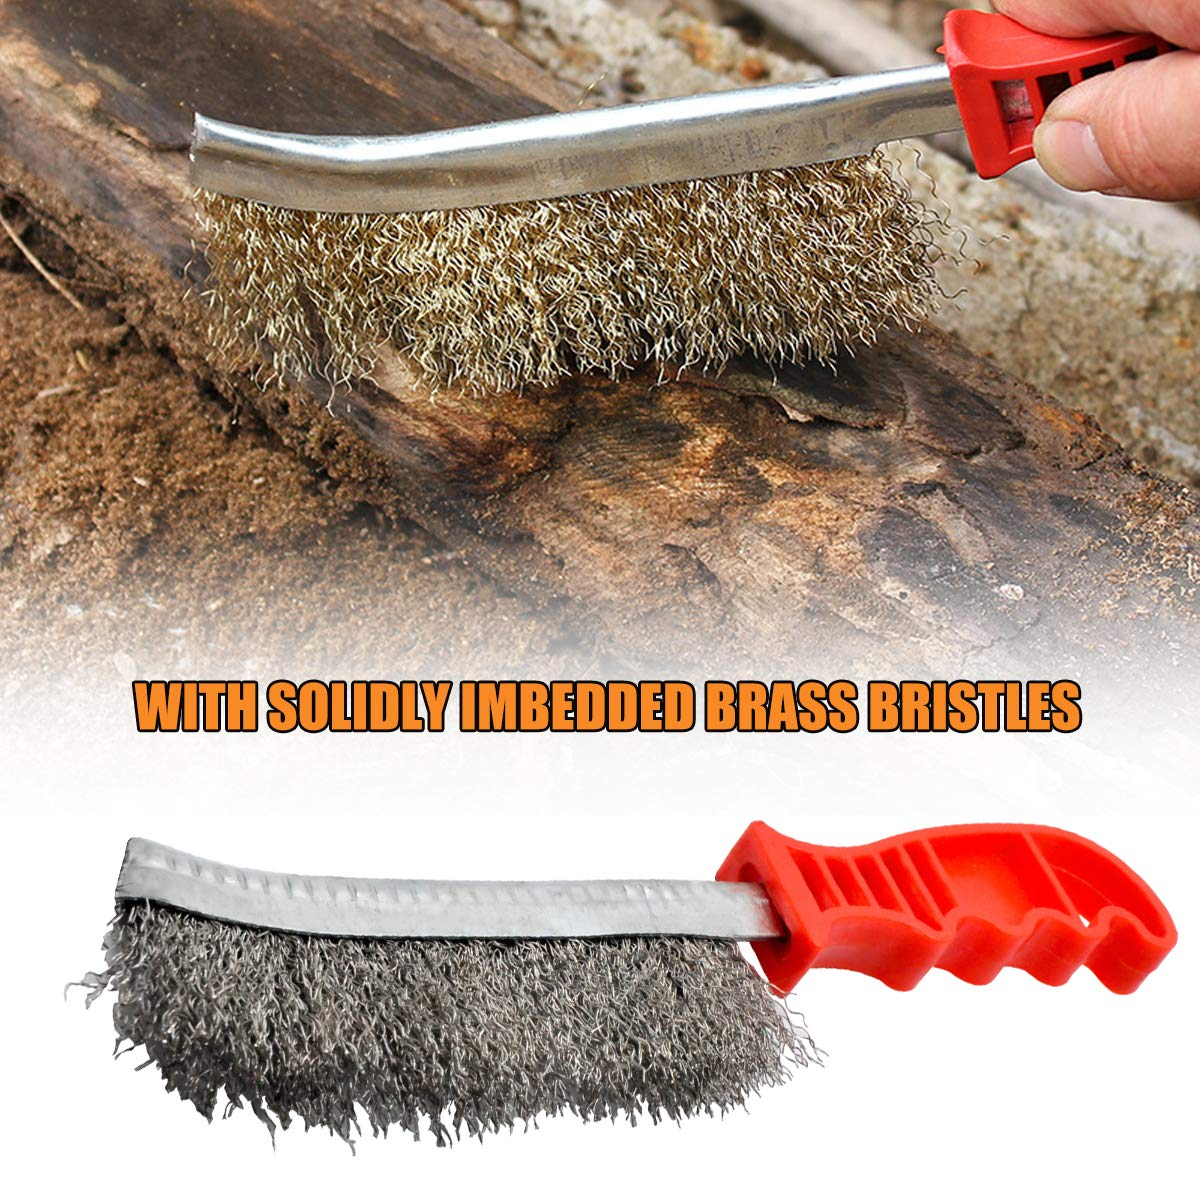 Curved Stainless Wire Scratch Brush Length 24cm,Red HugeAuto cleaning Hand Tools Brush with Plastic Grip Handle